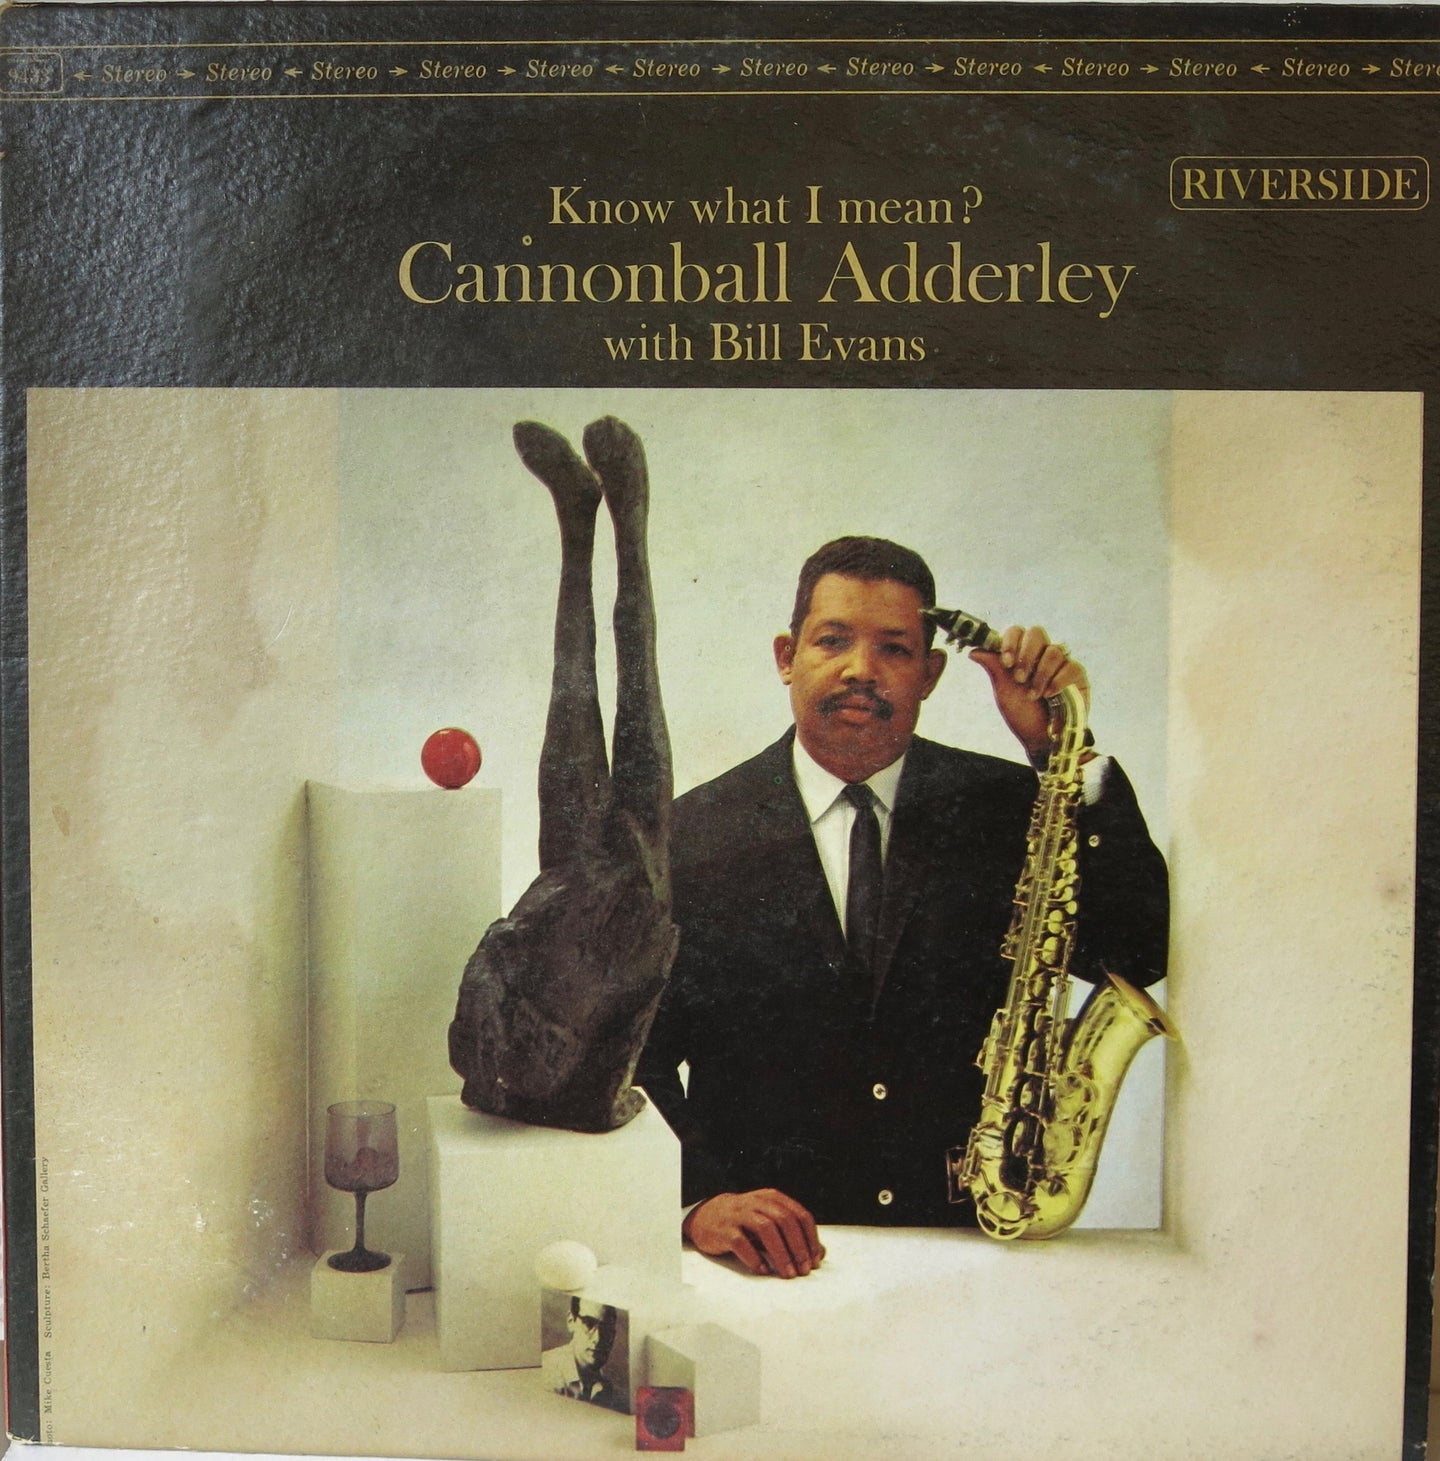 Know What I Mean? - Cannonball Adderly with Bill Evans - Riverside